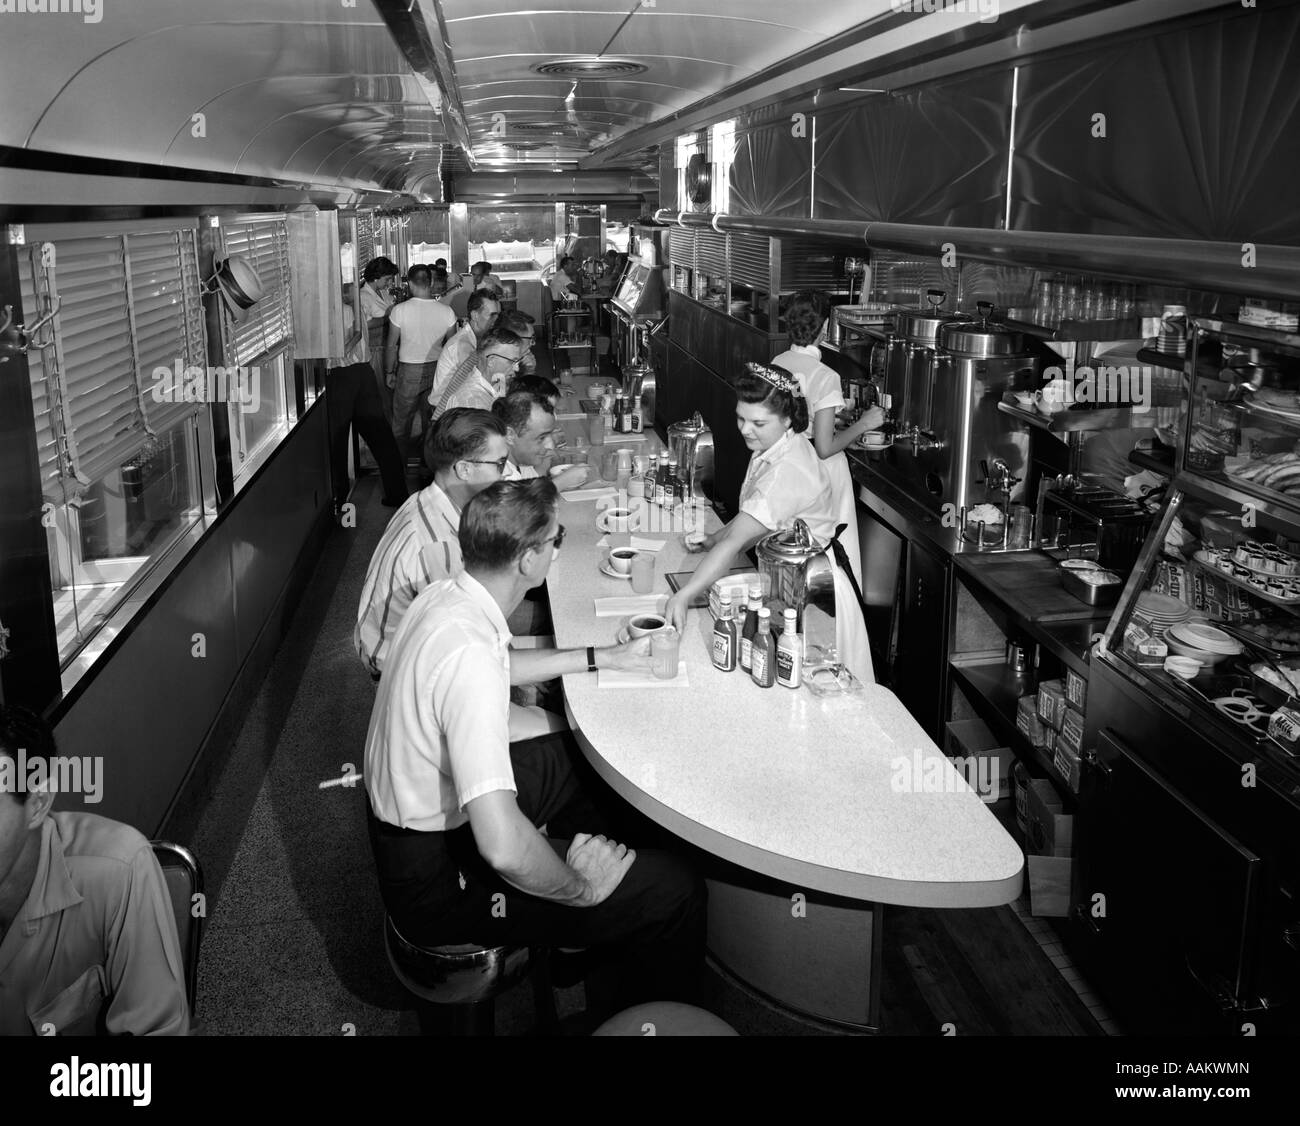 1960s Diner High Resolution Stock Photography And Images Alamy